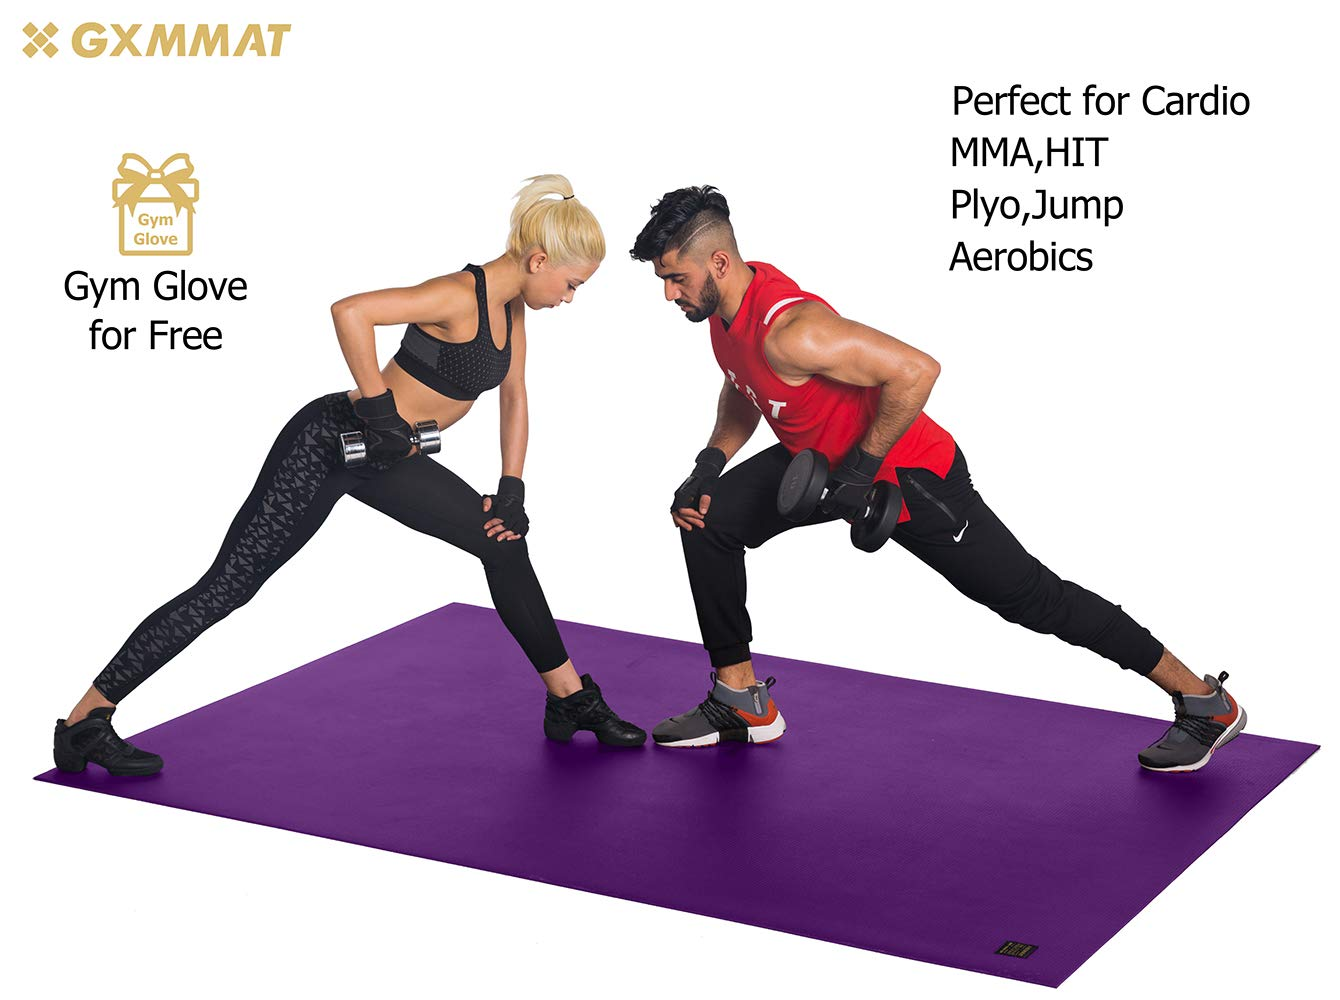 Gxmmat Extra Large Exercise Mat 6'x8'x7mm for Home Gym Flooring, Ultra Durable Cardio Workout Mats Non-Slip,Non-Toxic, Ideal for MMA, Plyo, Jump, All-Purpose Fitness by Gxmmat (Image #2)